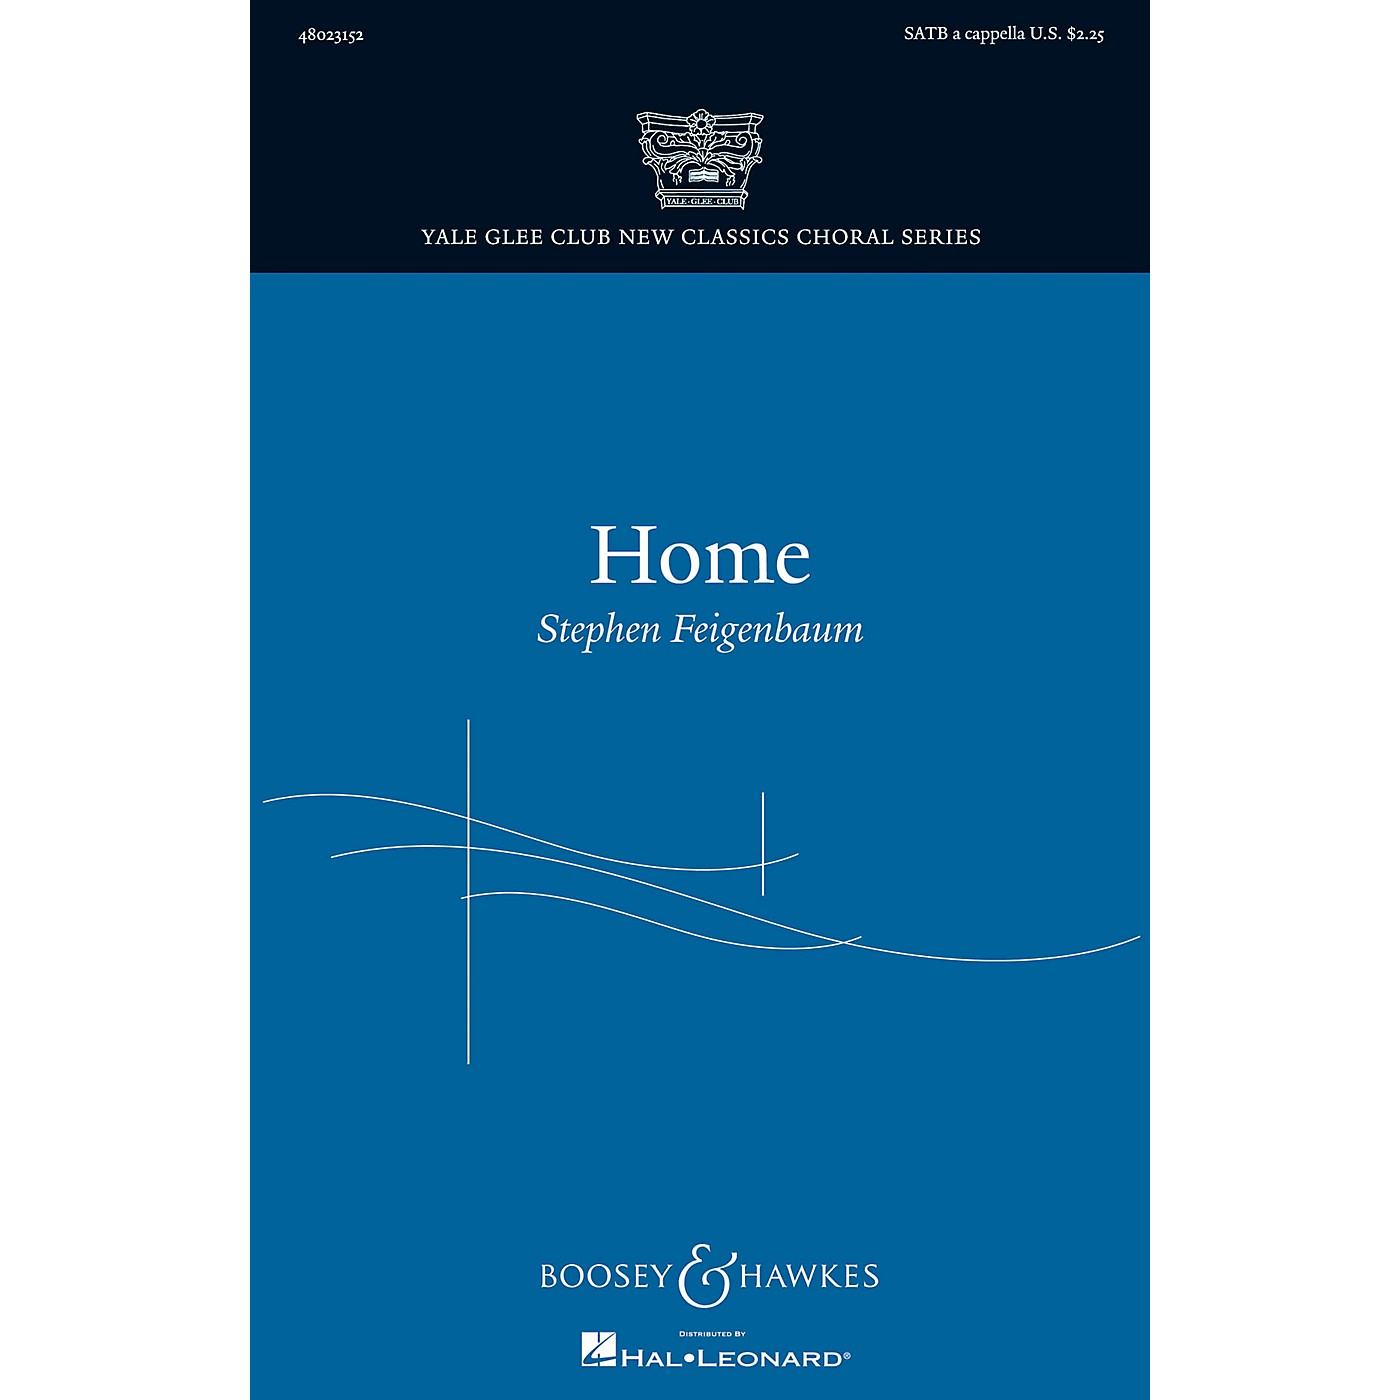 Boosey and Hawkes Home (Yale Glee Club New Classics Choral Series) SATB a cappella composed by Stephen Feigenbaum thumbnail